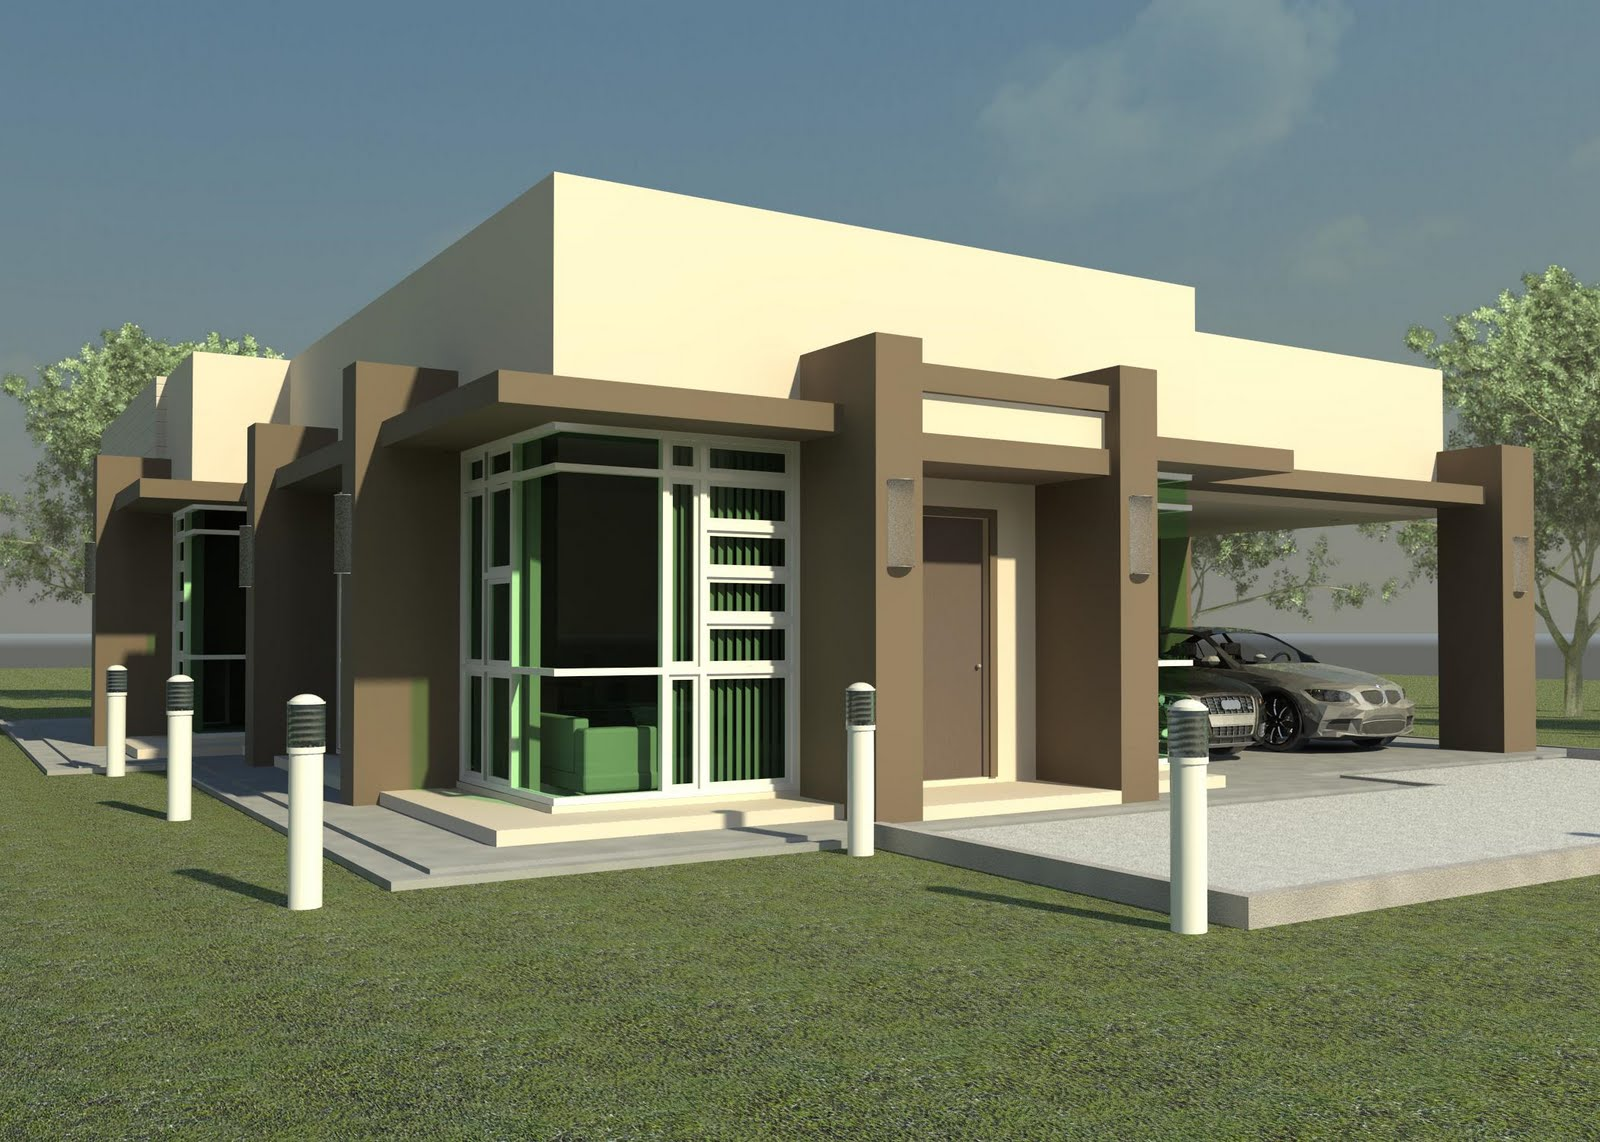 New home designs latest modern small homes designs exterior for Latest house designs